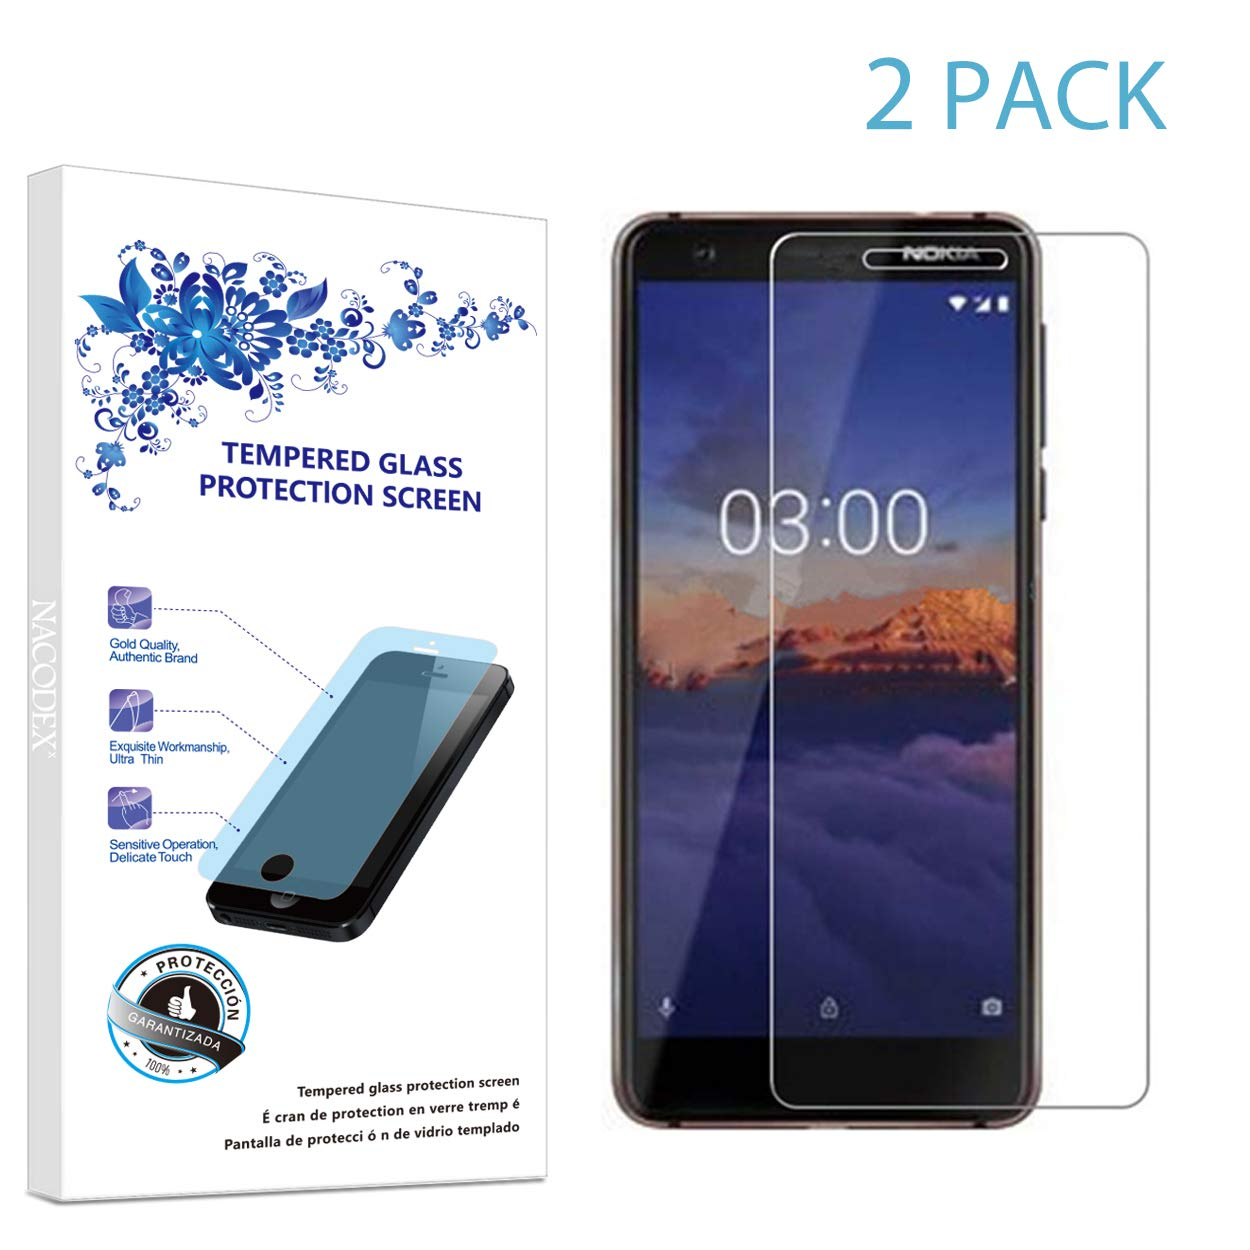 big sale 88de6 e31a1 Amazon.com: 2-Pack Screen Protector for Nokia 3.1 / Nokia 3 2018 ...